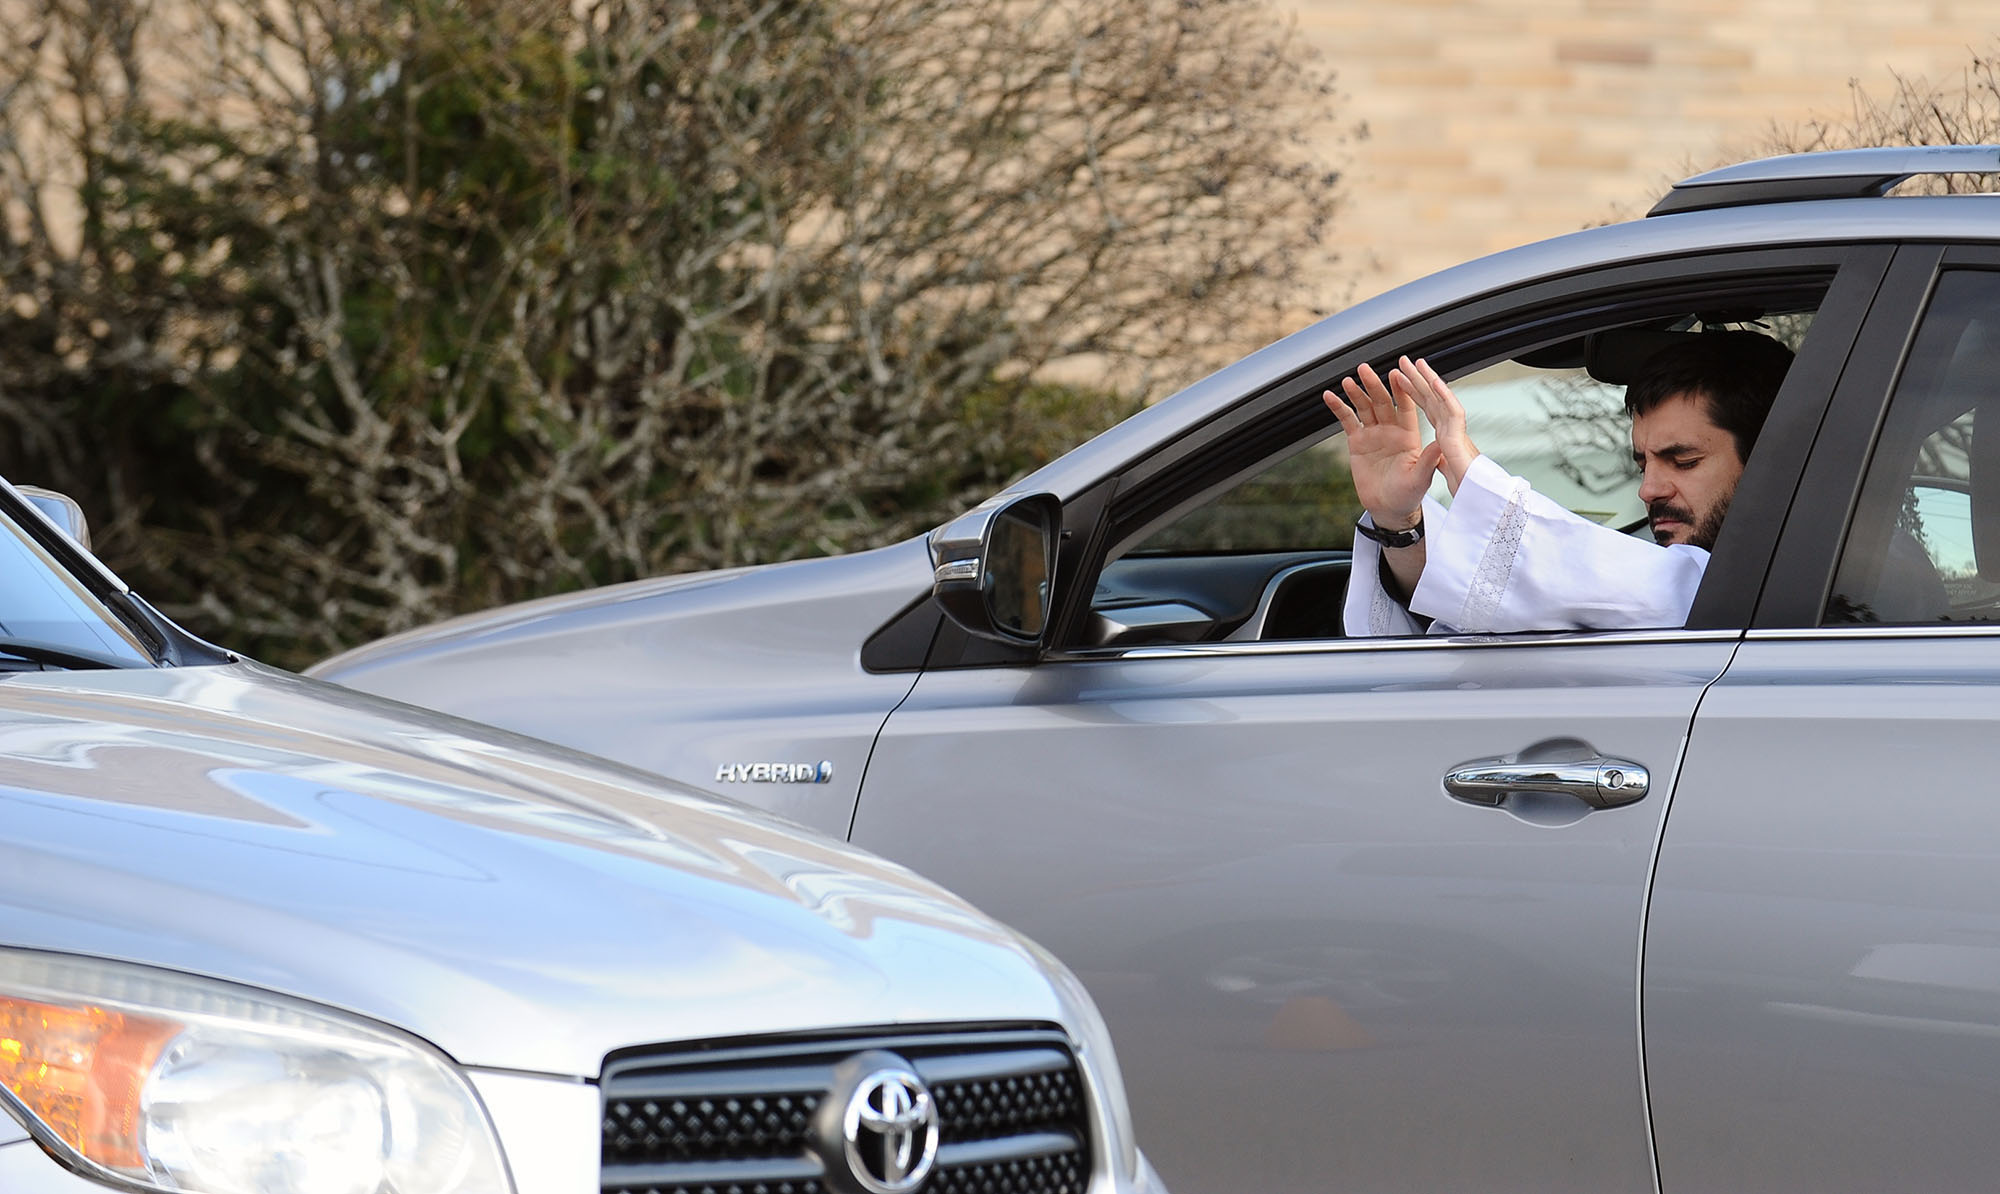 3/24/20-- MARLBOROUGH- Father Steven Clemance, pastor at the Immaculate Conception Catholic Church, offers a blessing at a drive-thru confession Thursday afternoon. Two priests offer to hear confession Tuesday and Thursdays from 4-6 p.m. [Daily News and Wicked Local Staff Photo/Art Illman]